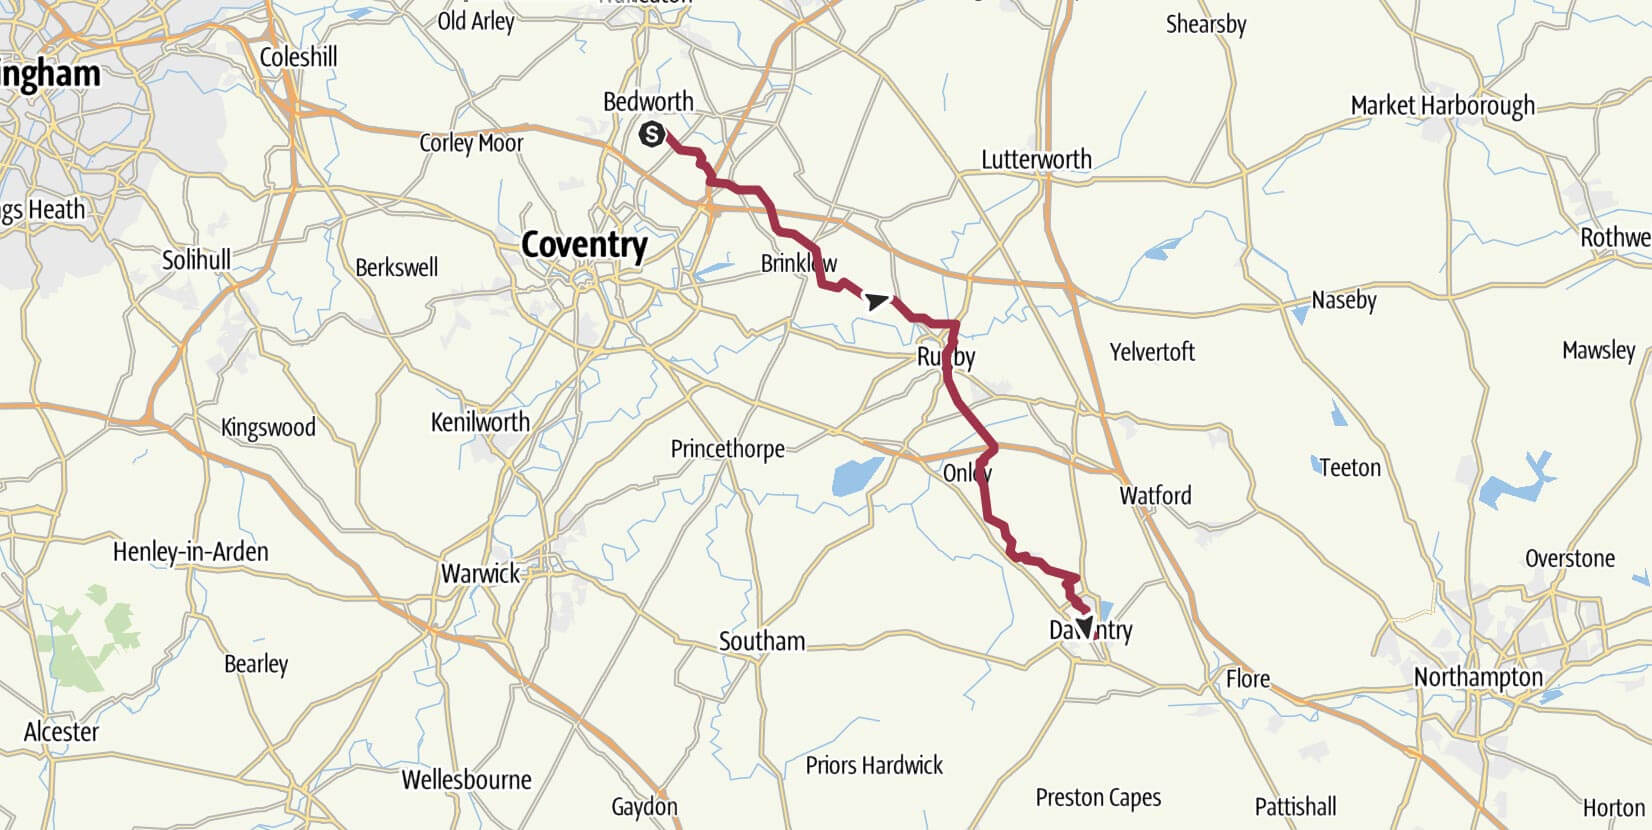 Day 7 - Bedworth to Daventry